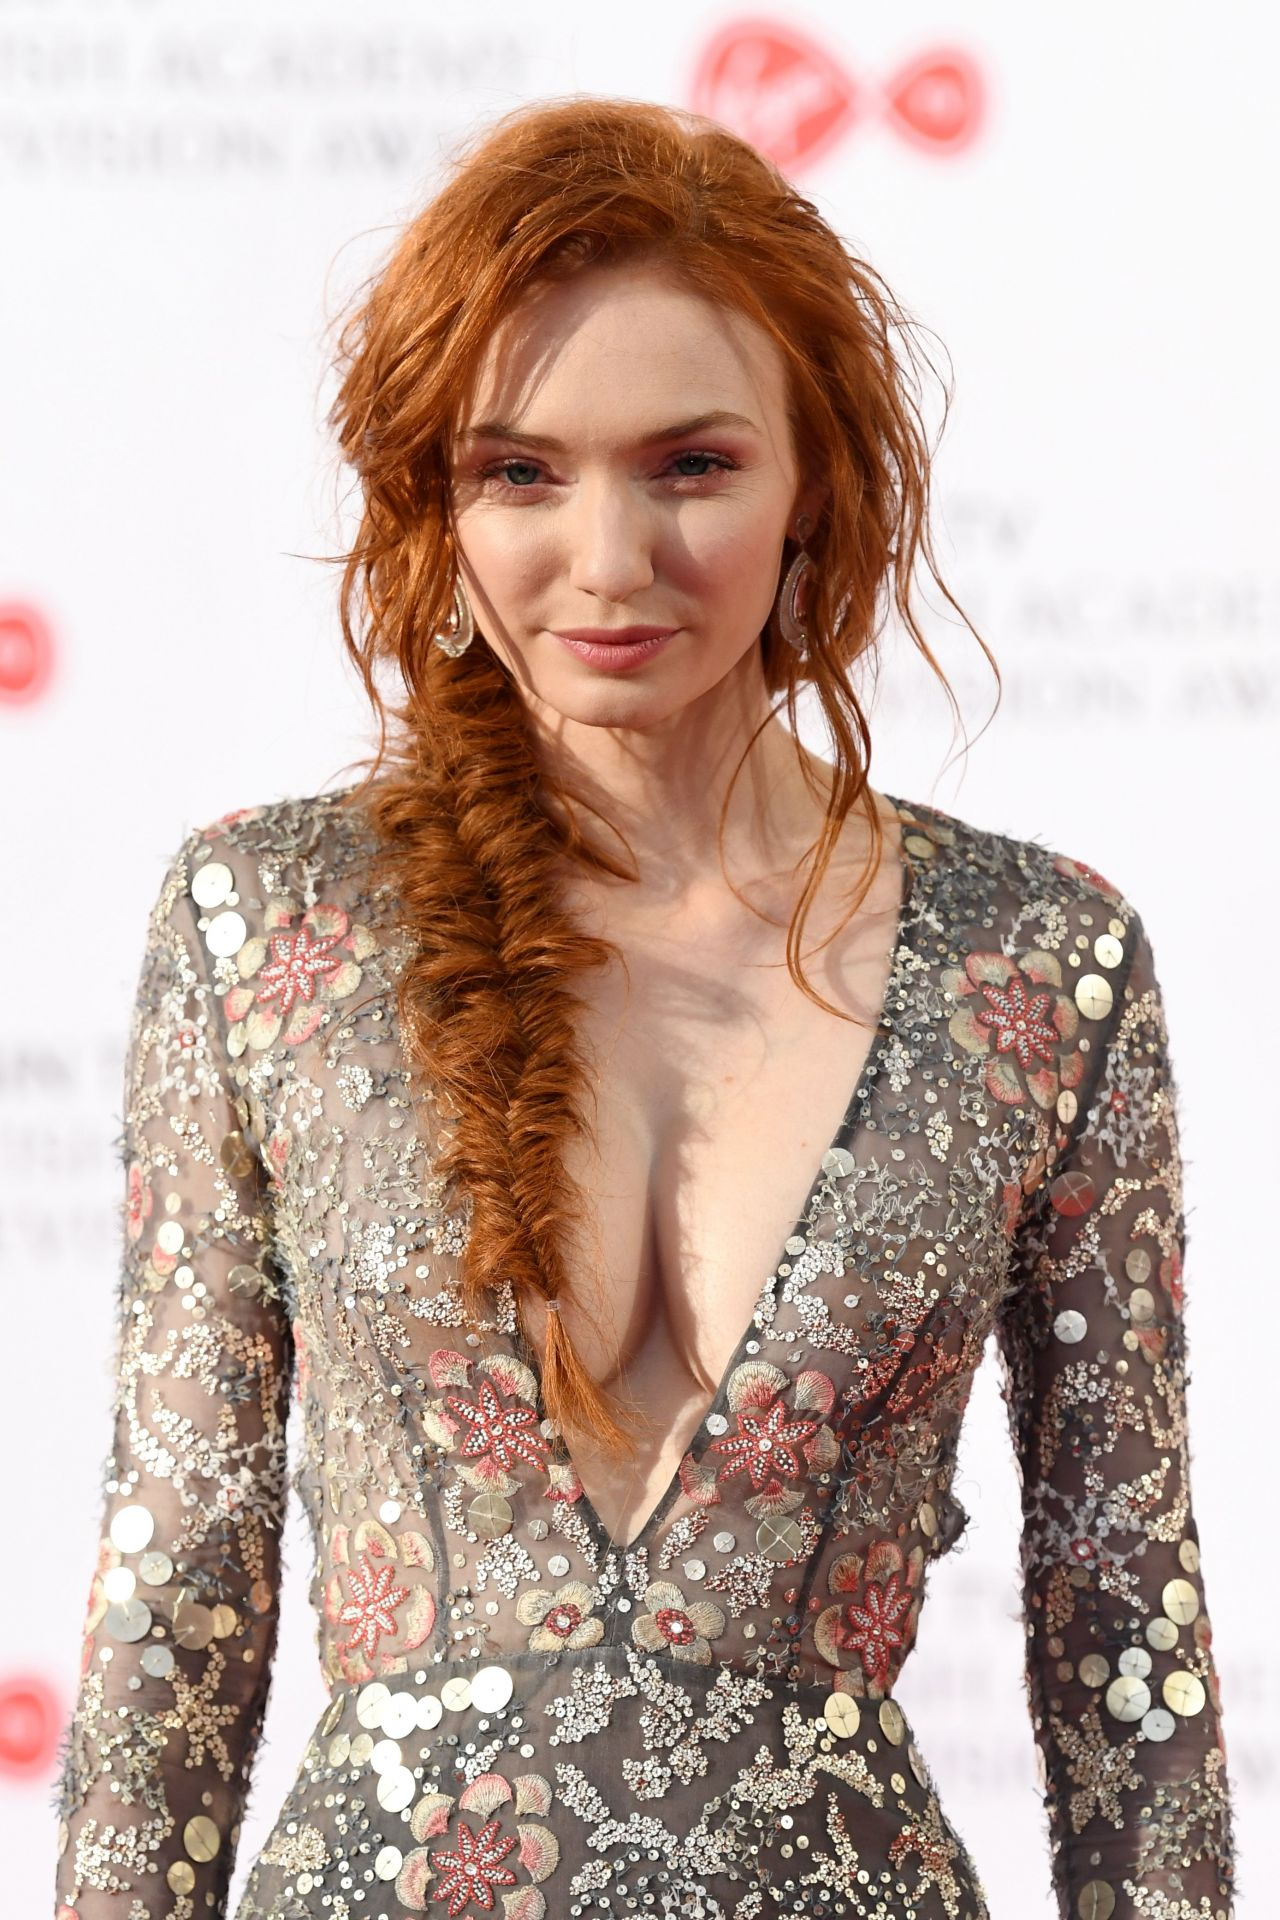 Whitehouse Eleanor Tomlinson Bafta Television Awards In London 05